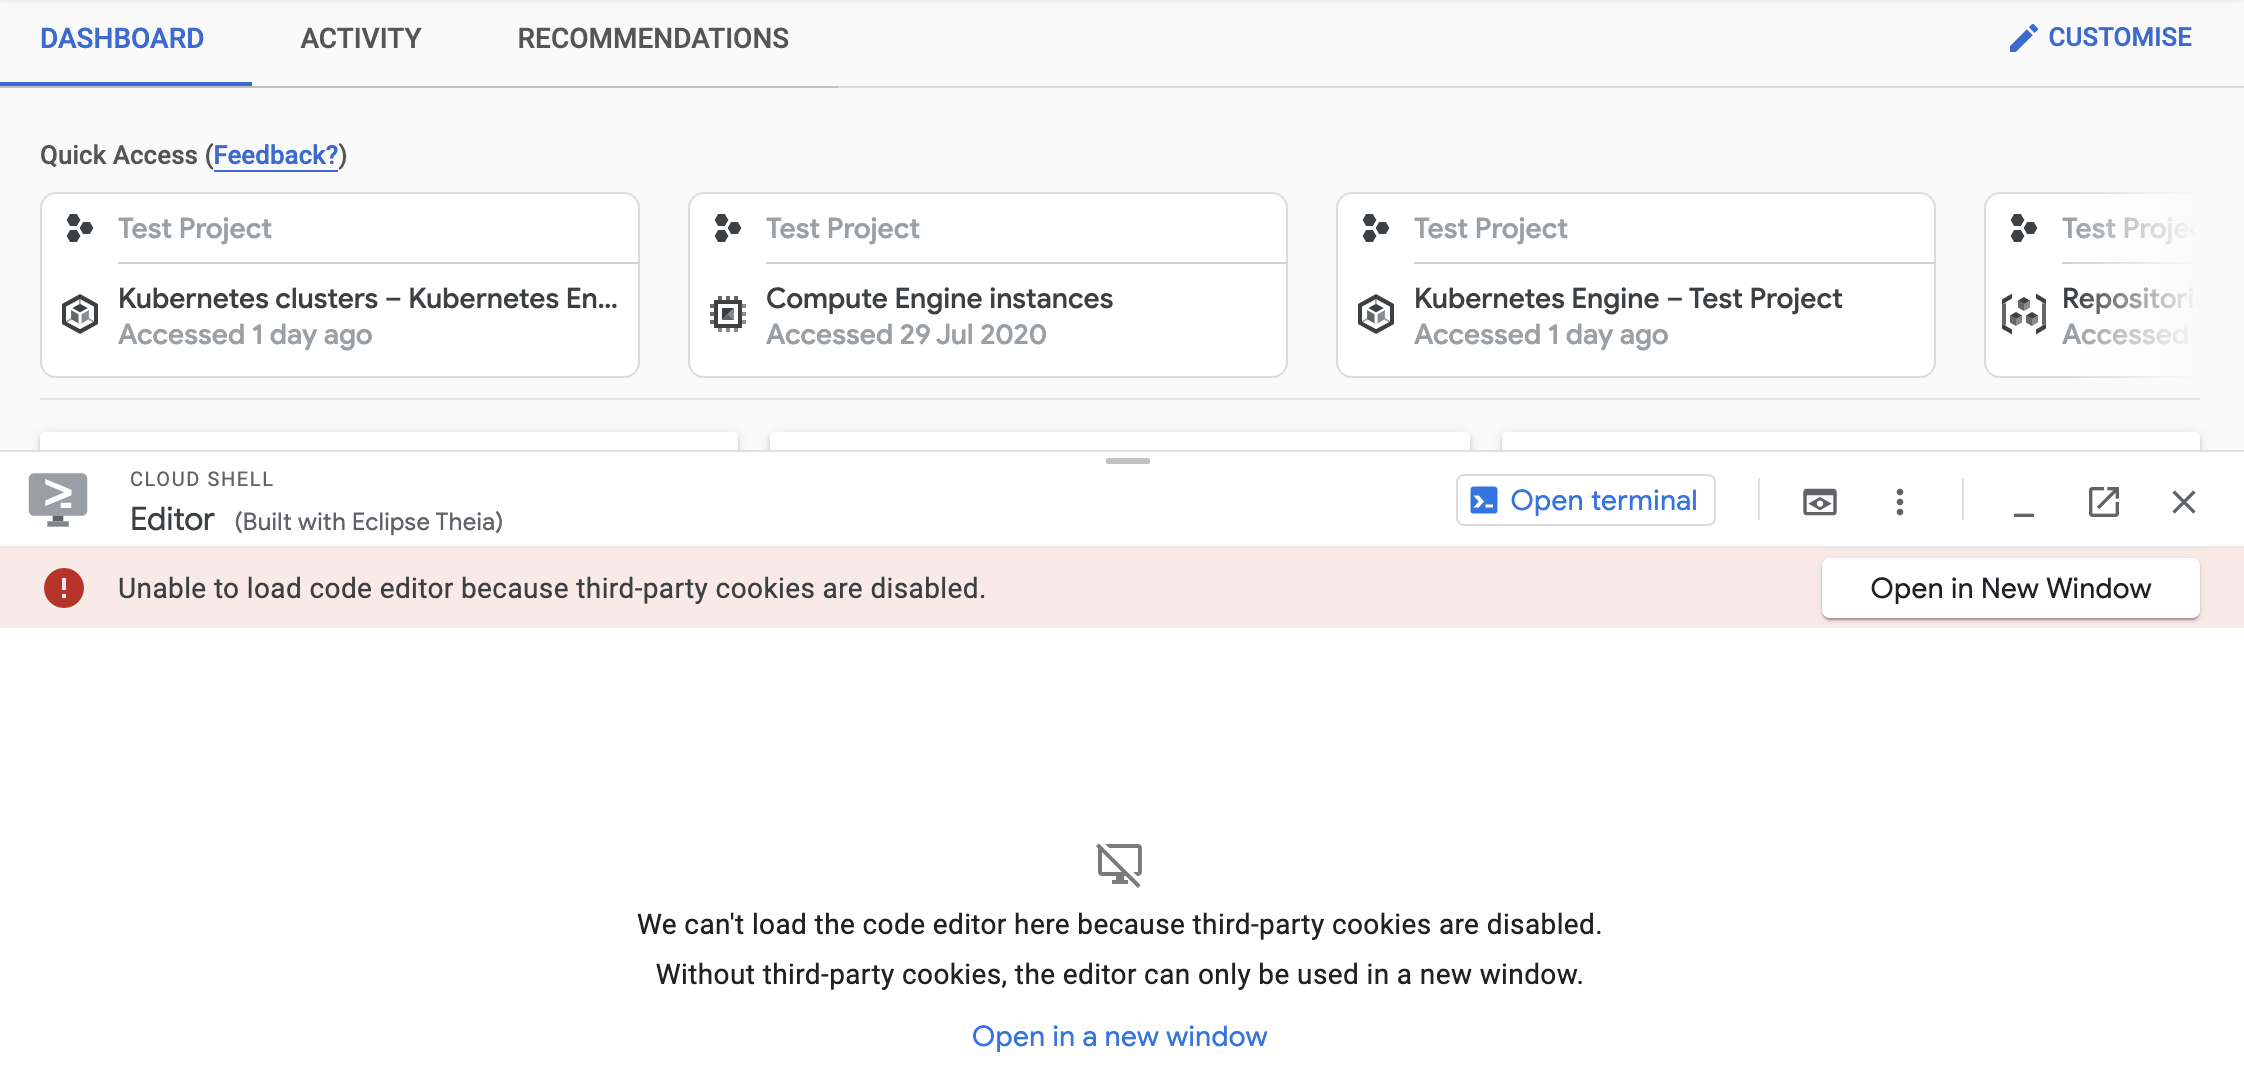 Editor panel explaining that the code editor could not be loaded because of third-party cookie blocking, with link to Open the editor in a new window